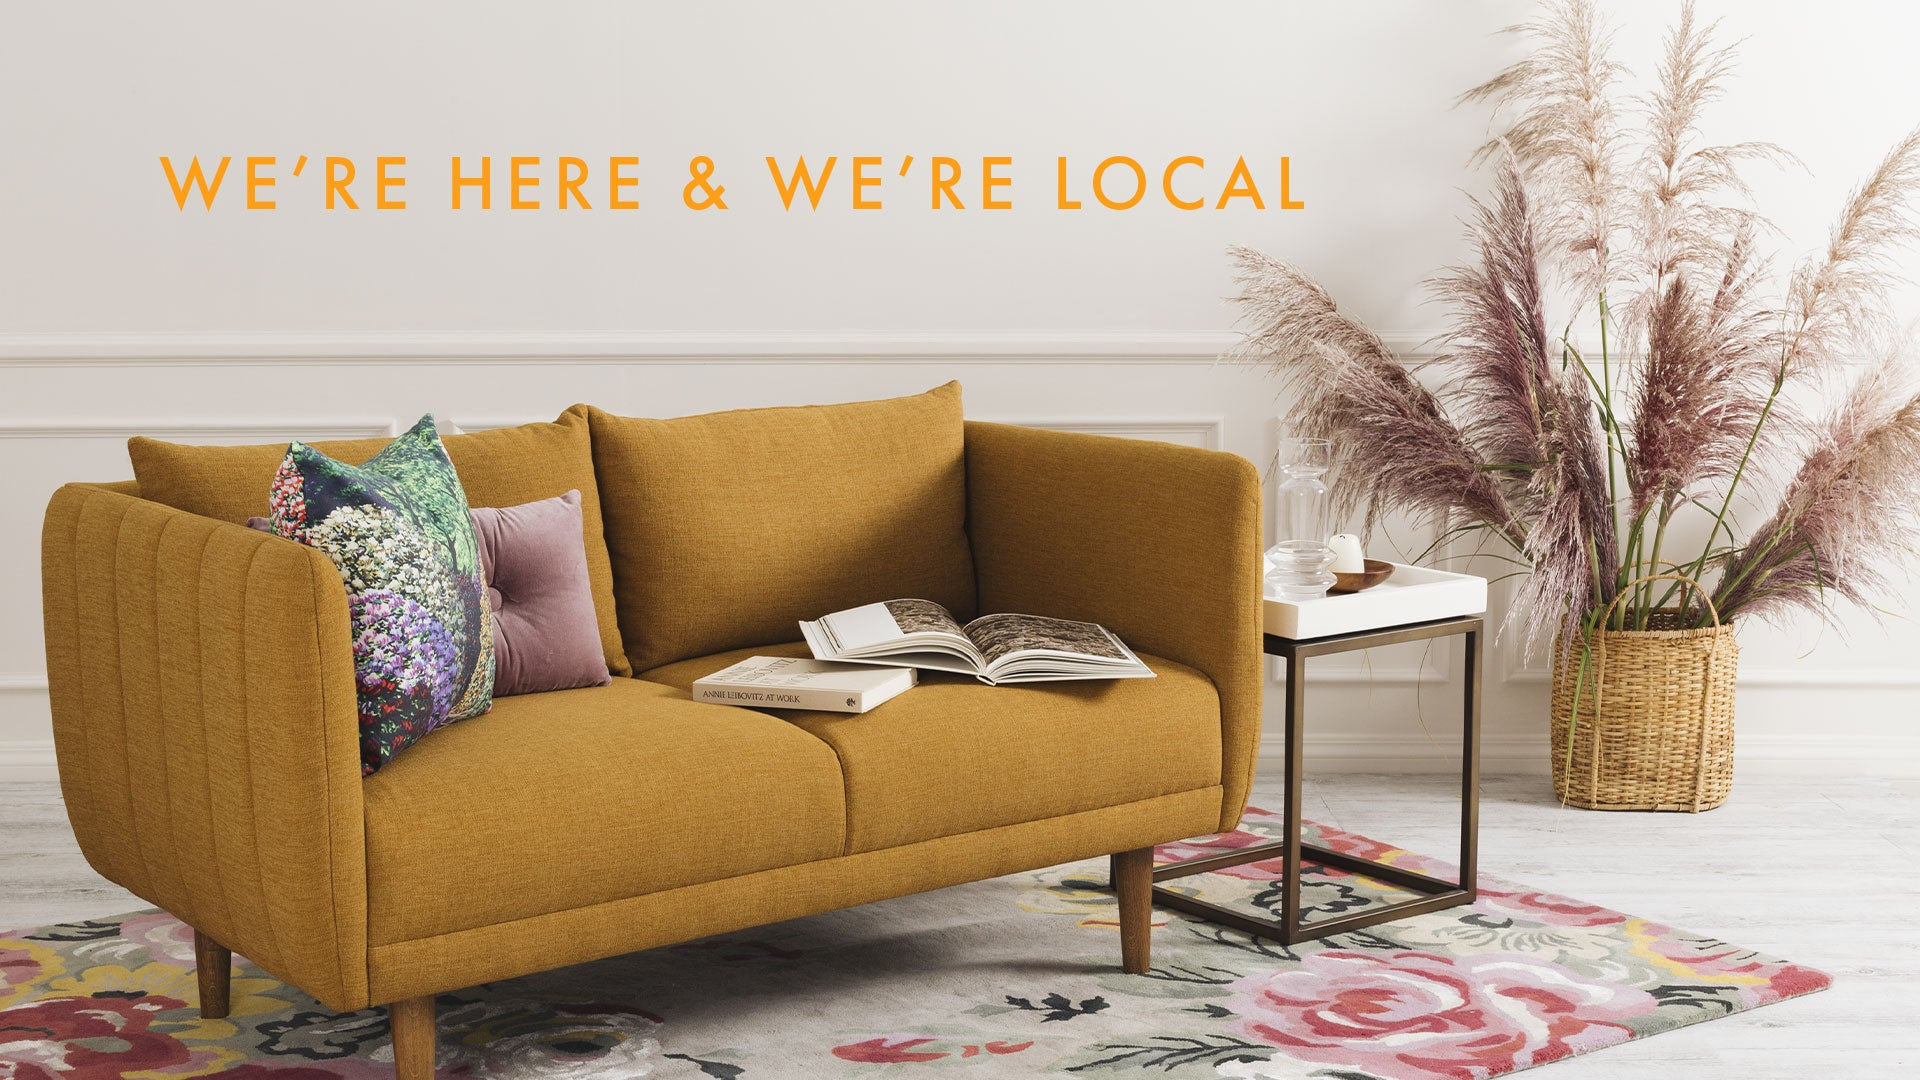 Botanica Furniture - We're here and we're local